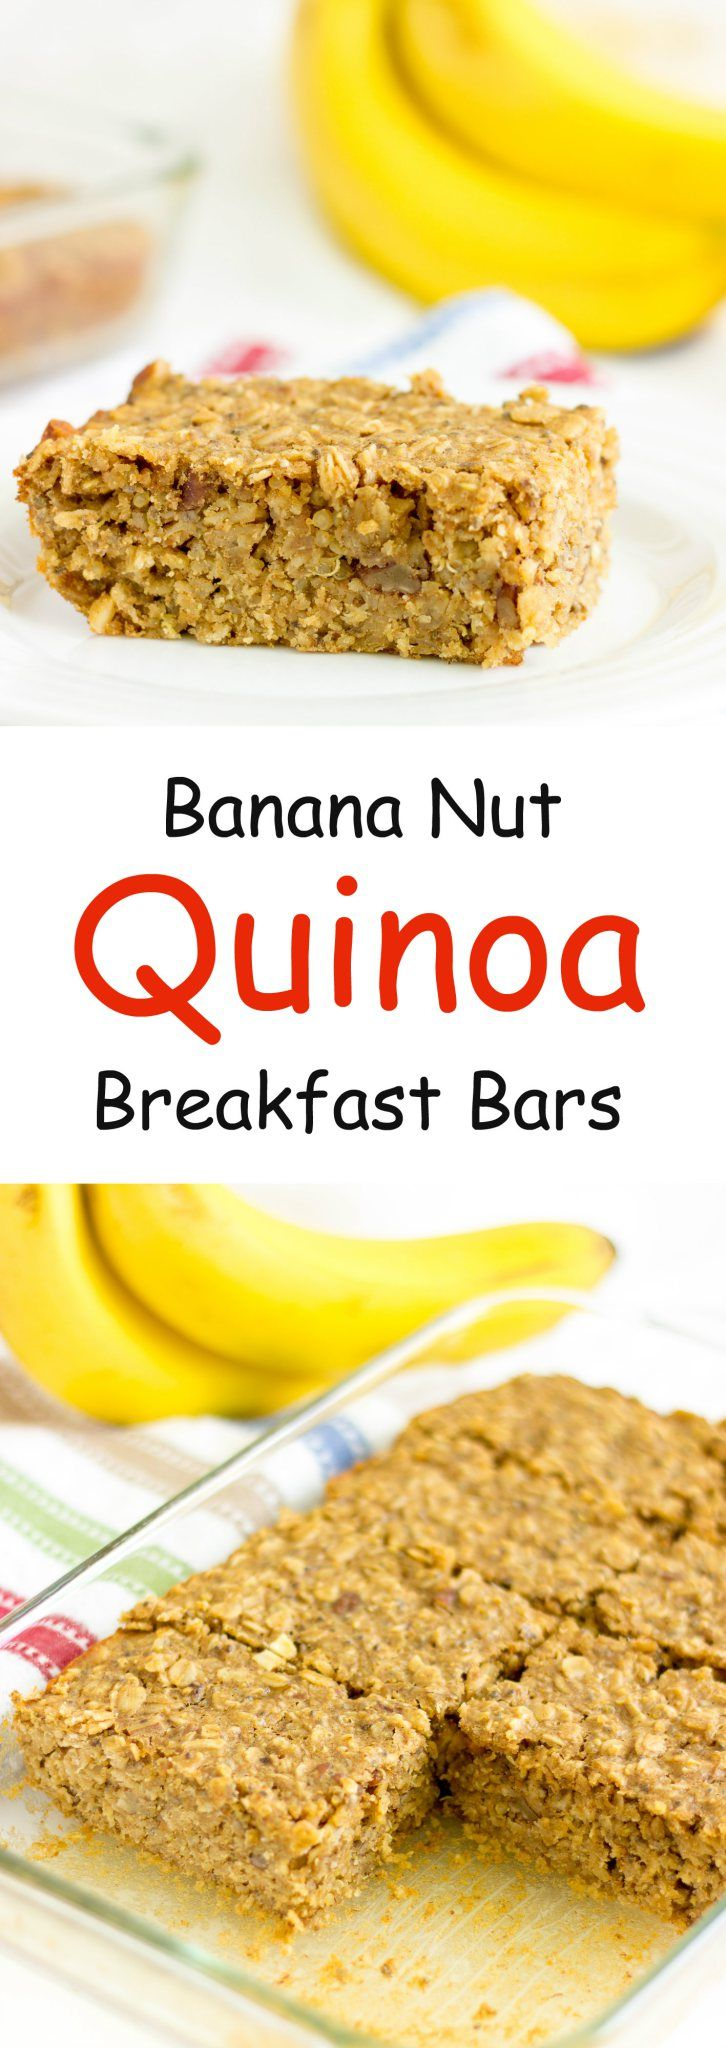 Banana Nut Quinoa Bars - Full of healthy fats, fiber, and protein. *Substituted veg oil, omitted walnuts and added 1/4 semi-sweet  chocolate chips, baked a little longer